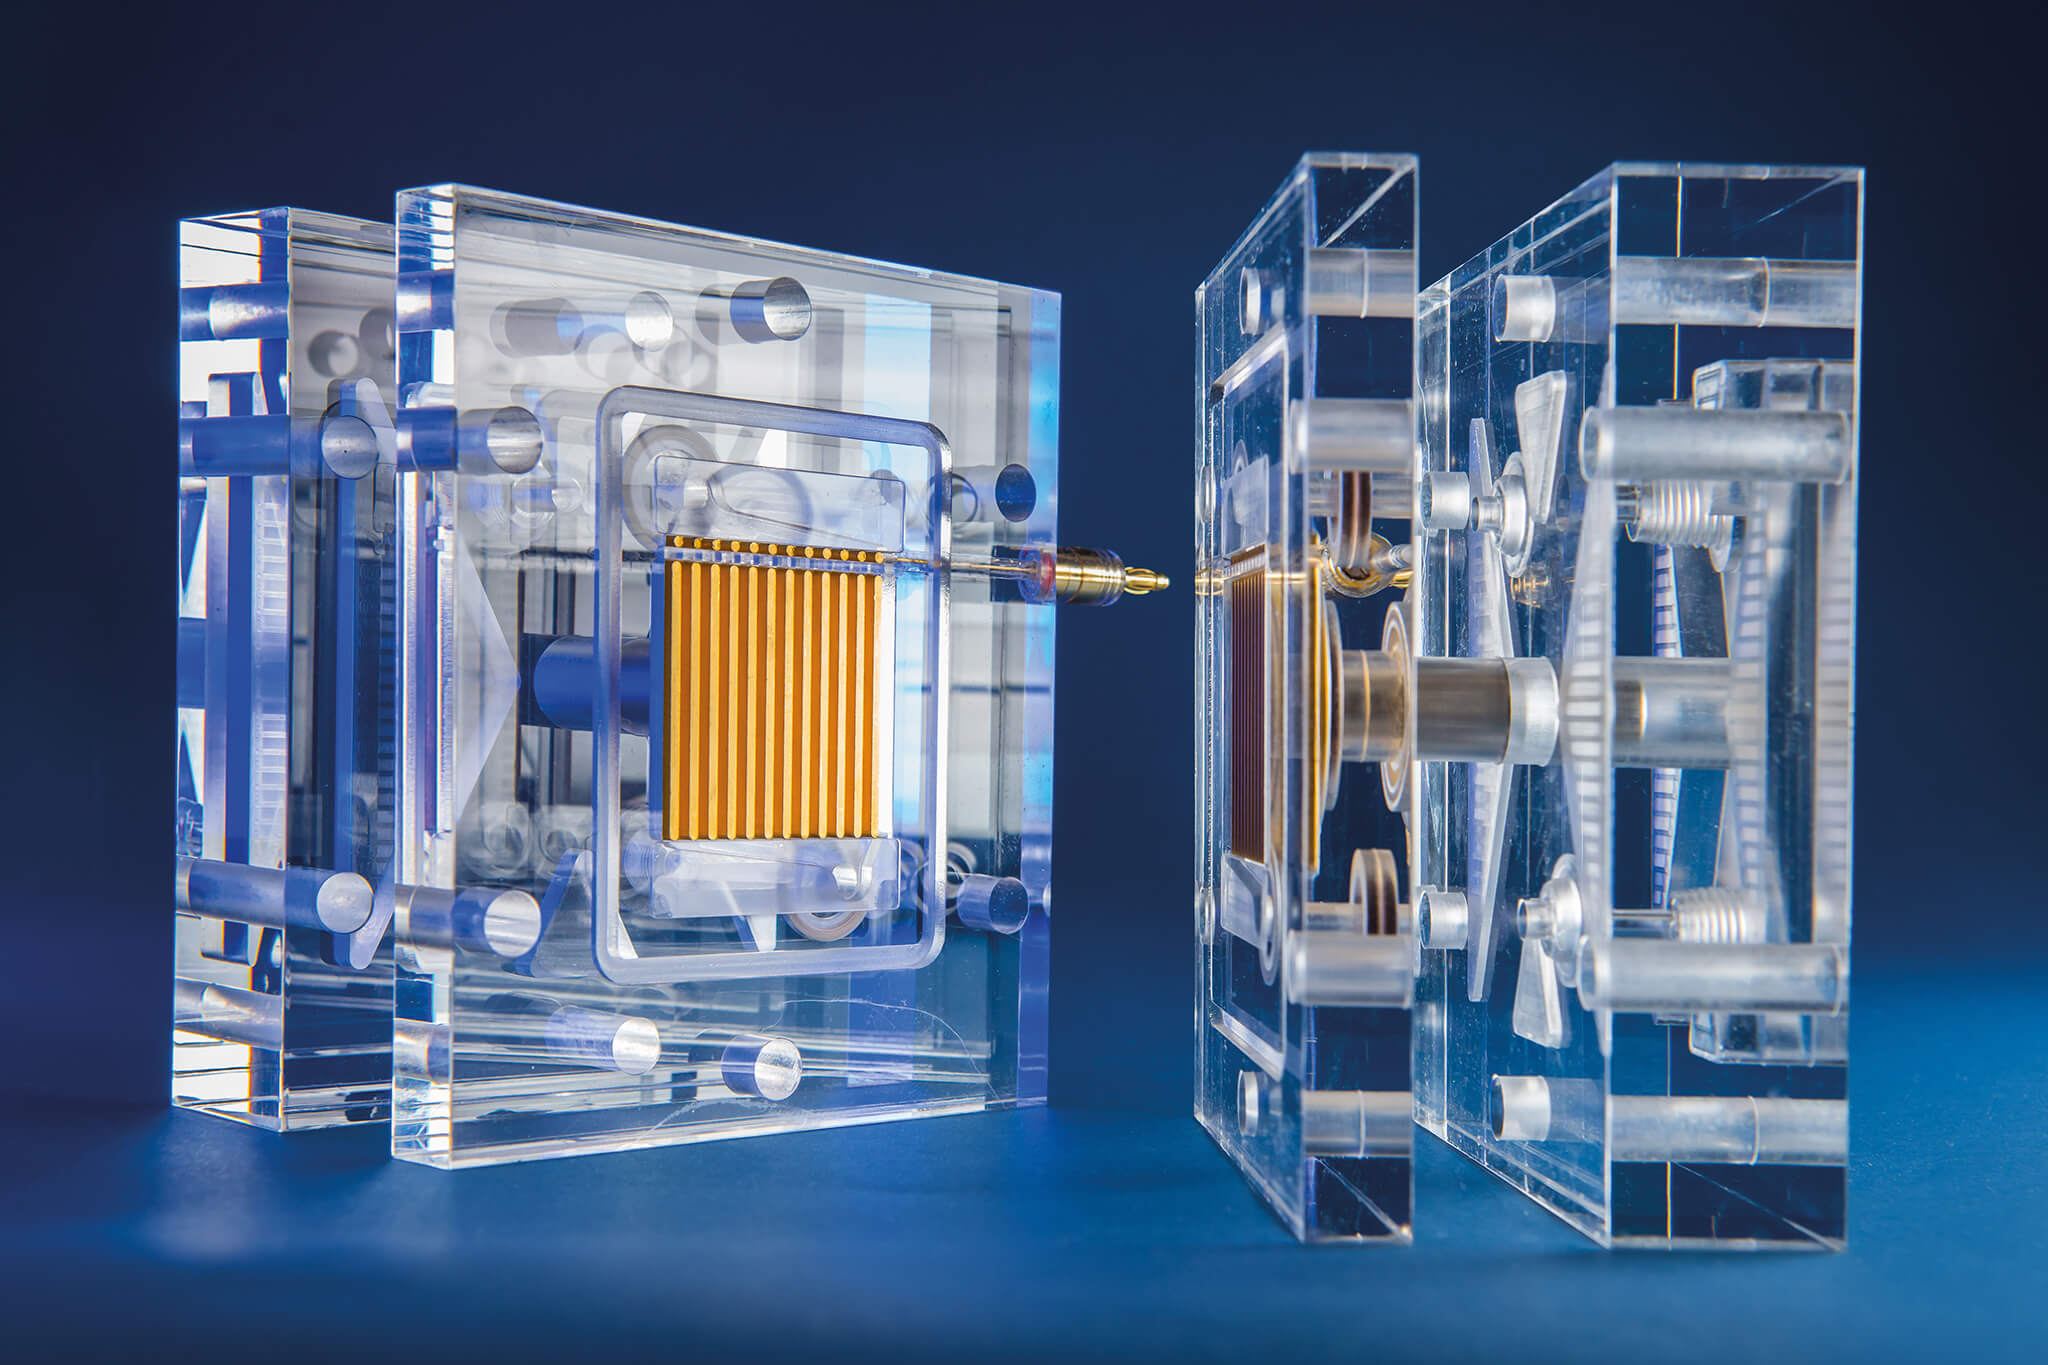 Clean And Efficient Fraunhofer Ise Presents Hydrogen Technologies